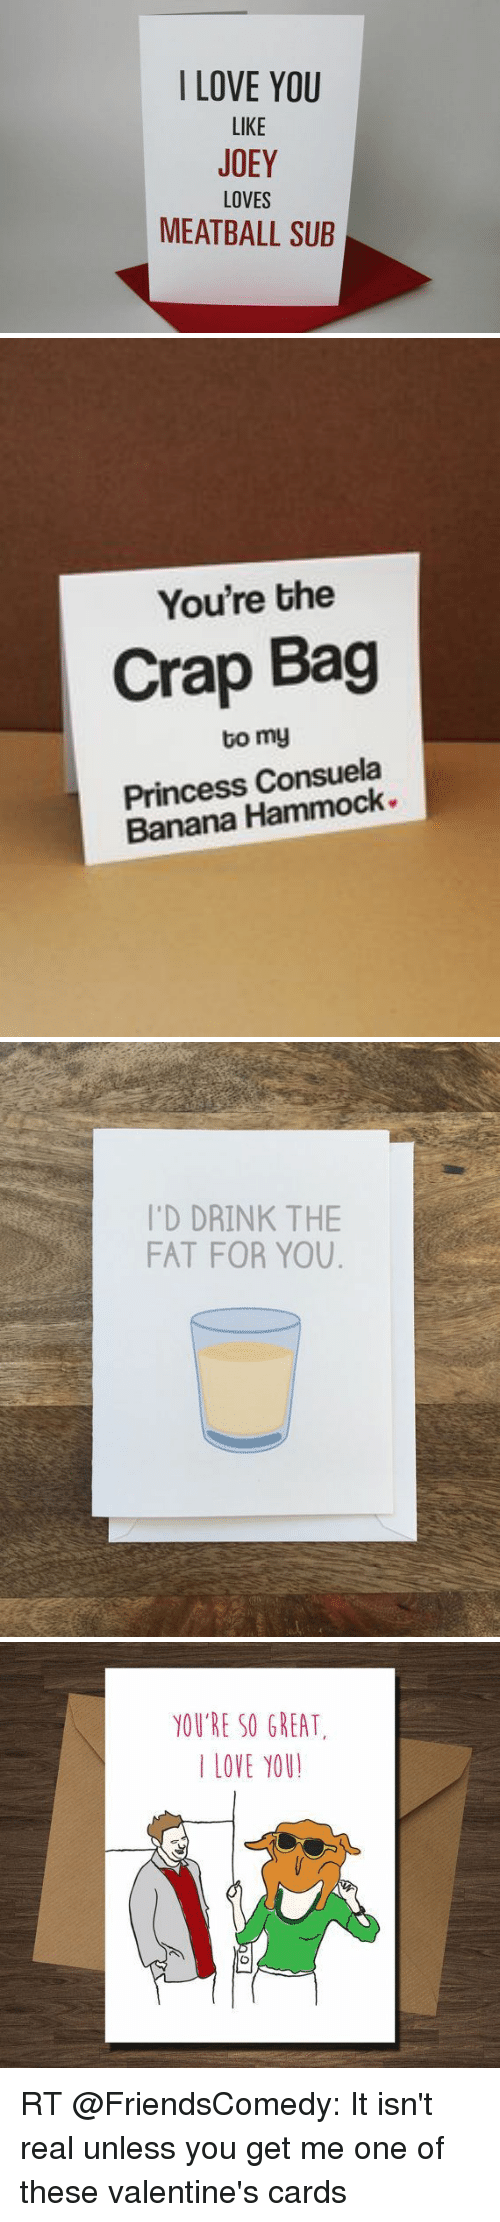 Memes, Hammock, and 🤖: I LOVE YOU  LIKE  JOEY  LOVES  MEATBALL SUB   You're the  Crap Bag  tomy  Princess Consuela  Banana Hammock   'D DRINK THE  FAT FOR YOU   YOU'RE SO GREAT.  LOVE YOU! RT @FriendsComedy: It isn't real unless you get me one of these valentine's cards